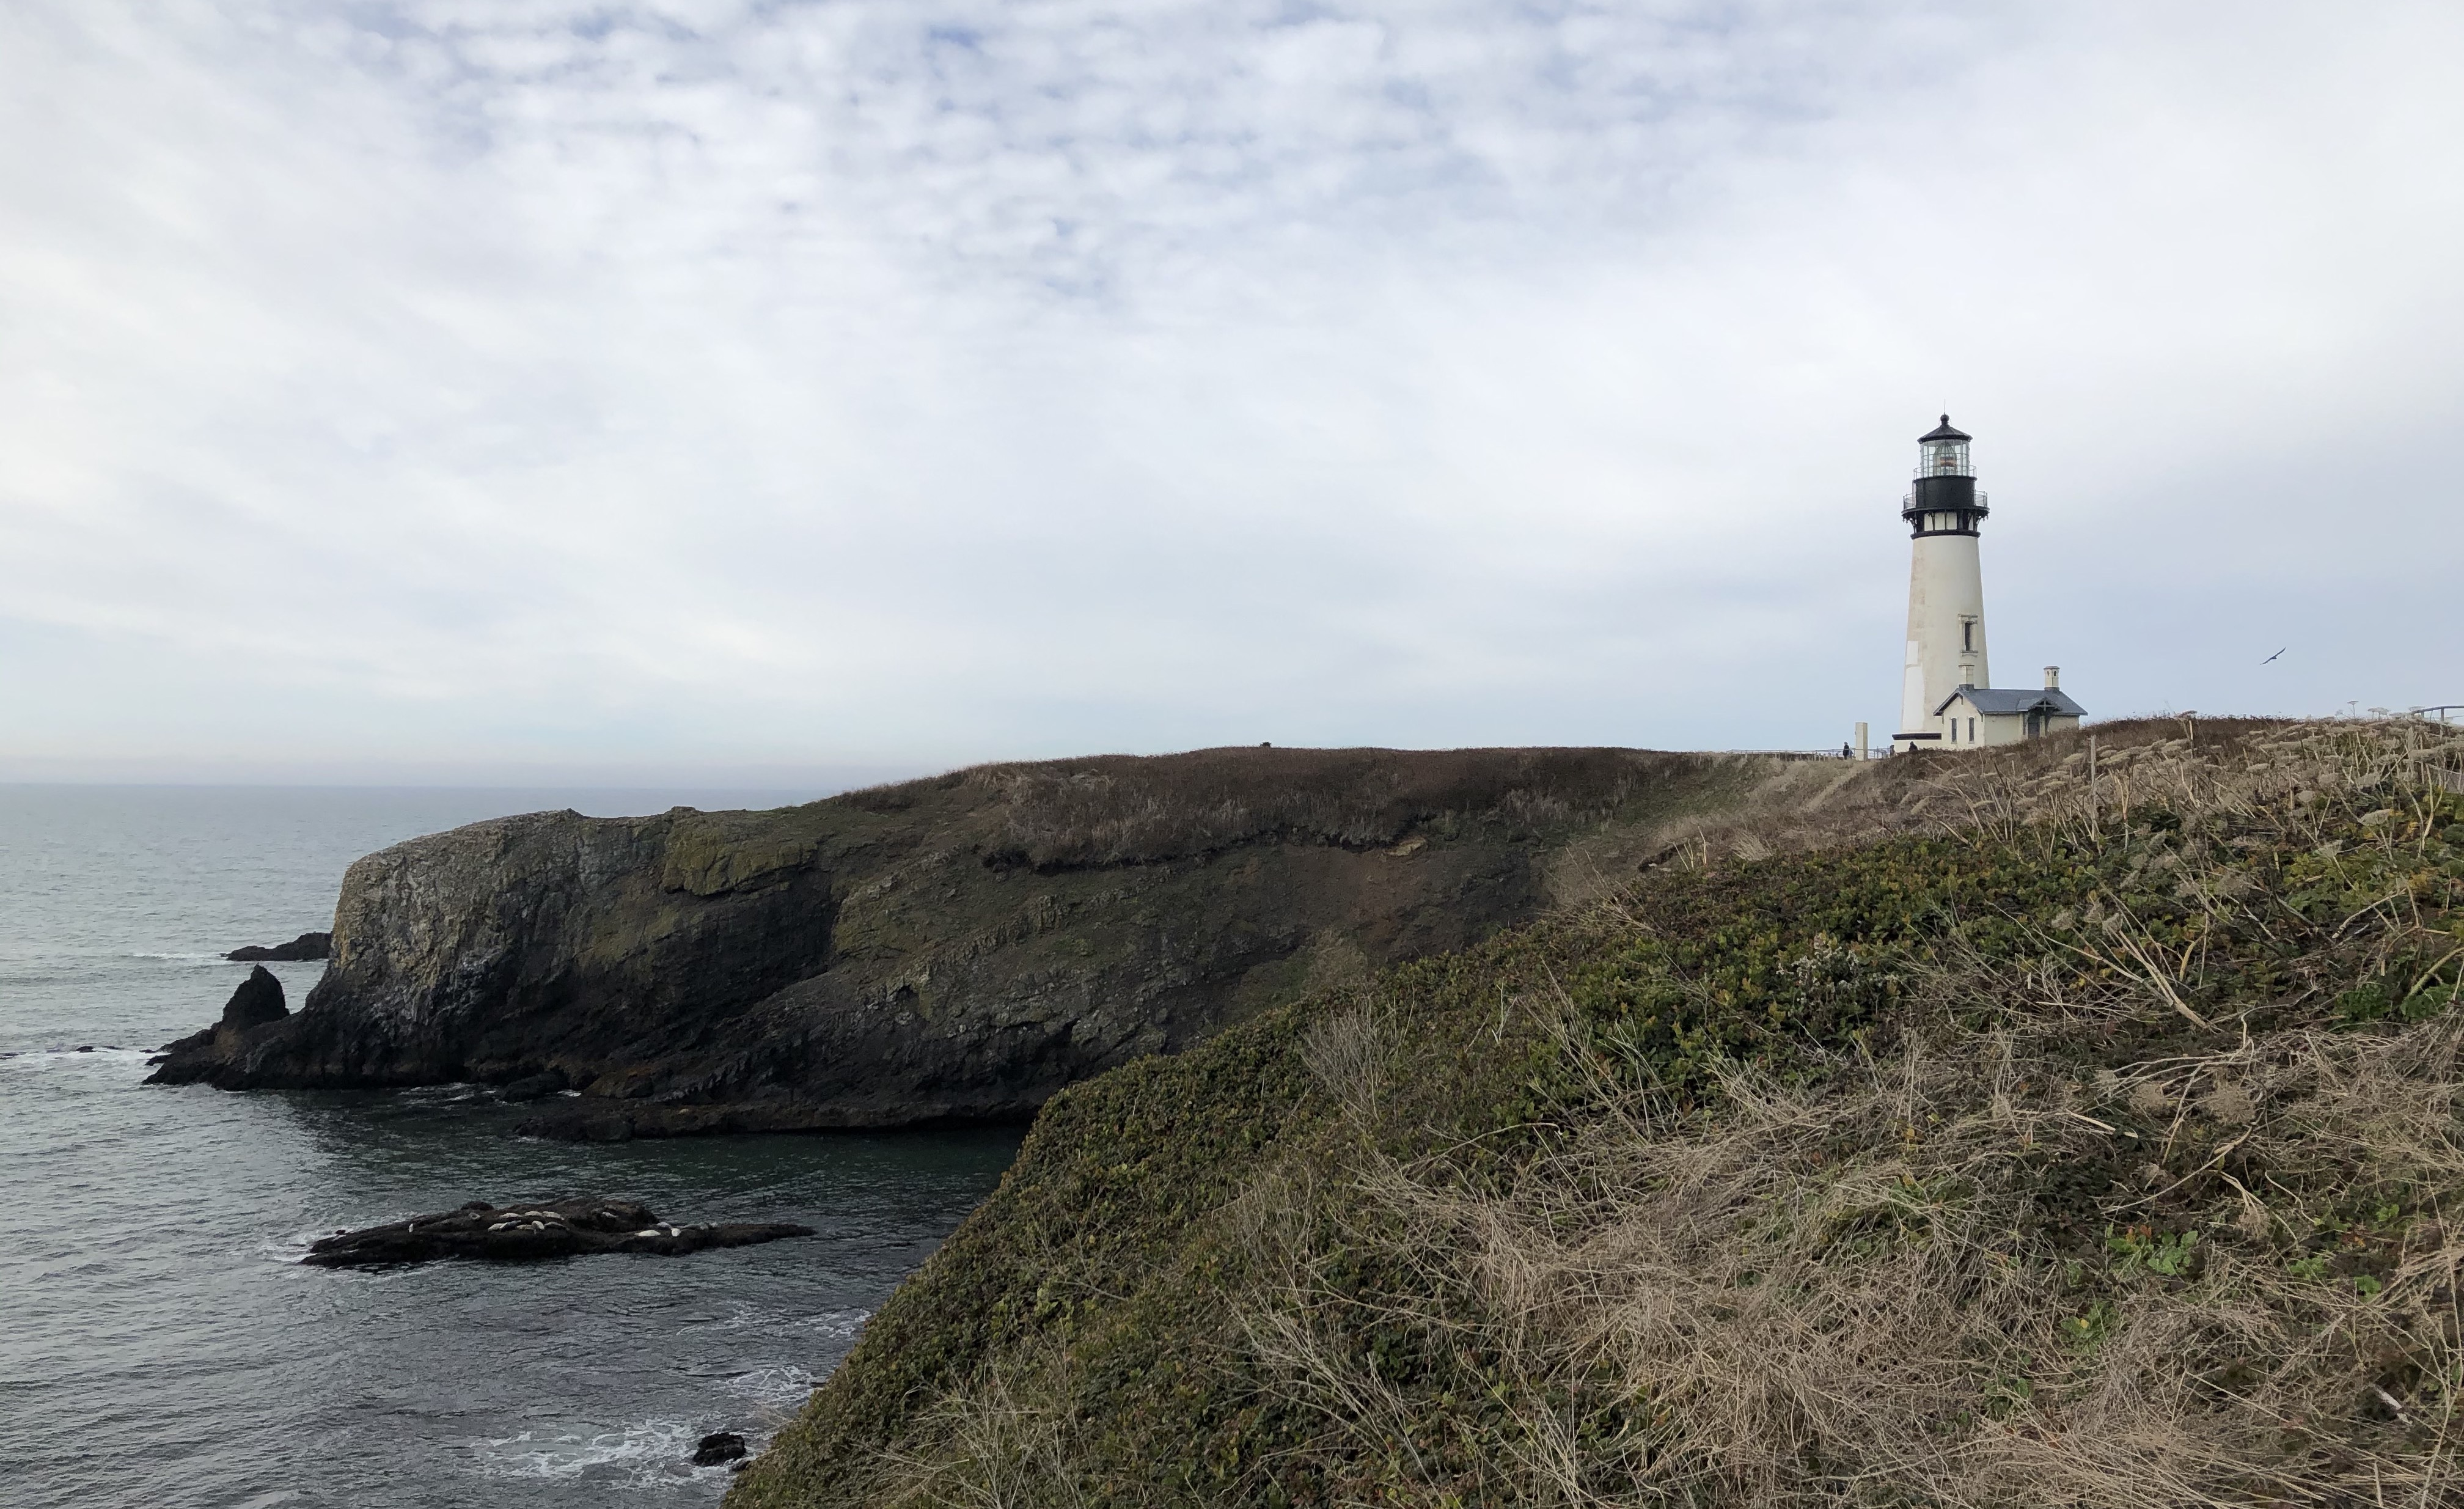 A lone white lighthouse on the rocky Oregon coast with overcast weather and dull green banks.